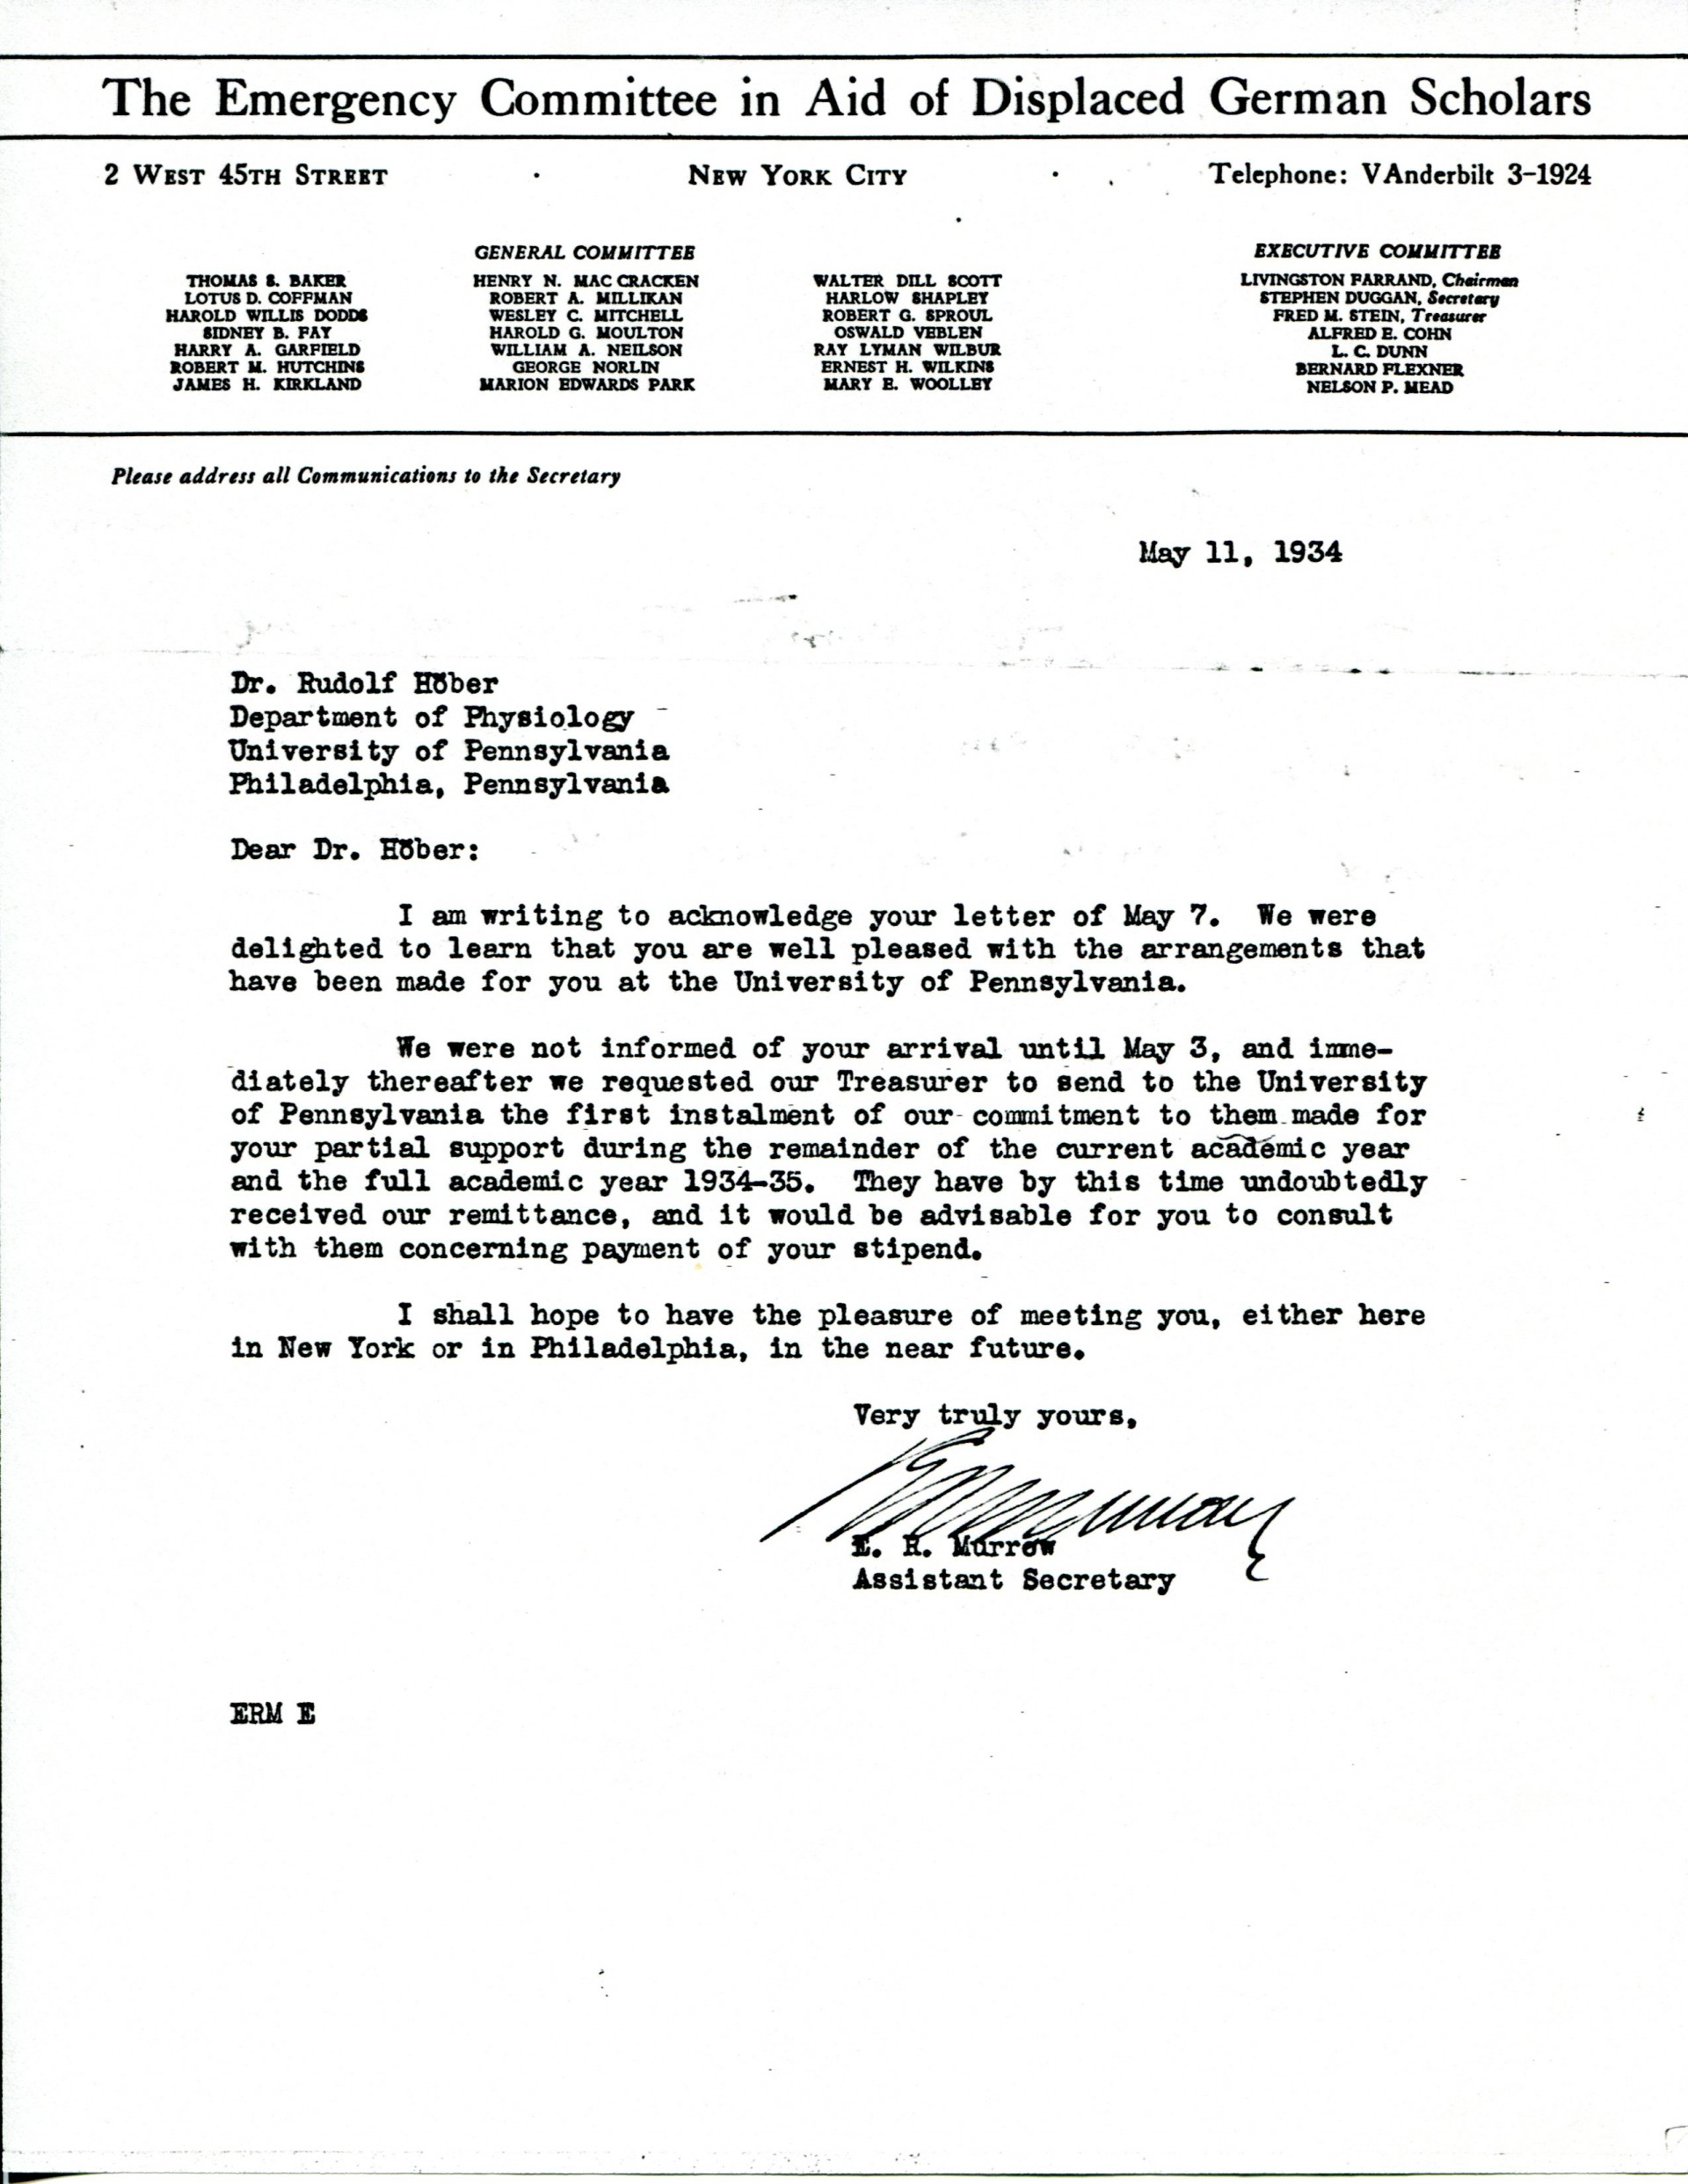 007 Cornell Essay Example Uofpenn Murrow Ltr May Stupendous Mba Examples Engineering Essays That Worked 1920